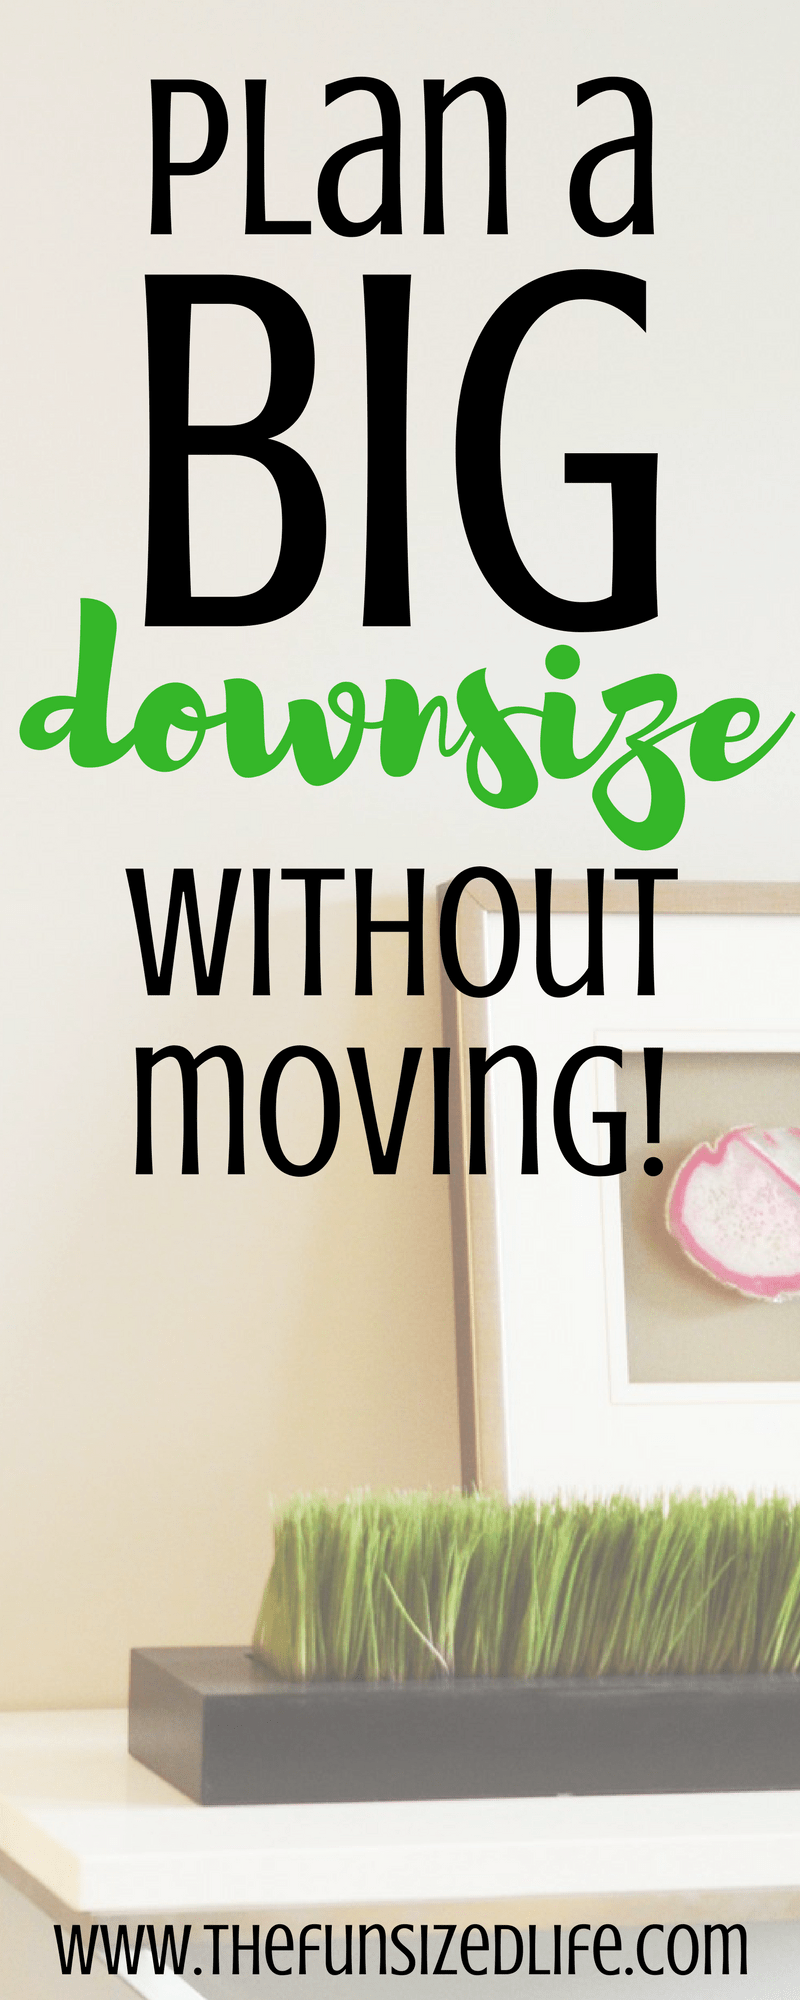 Did you know it's possible to change your life and your home without moving? You can downsize without moving using these 8 simple tips to get you started.